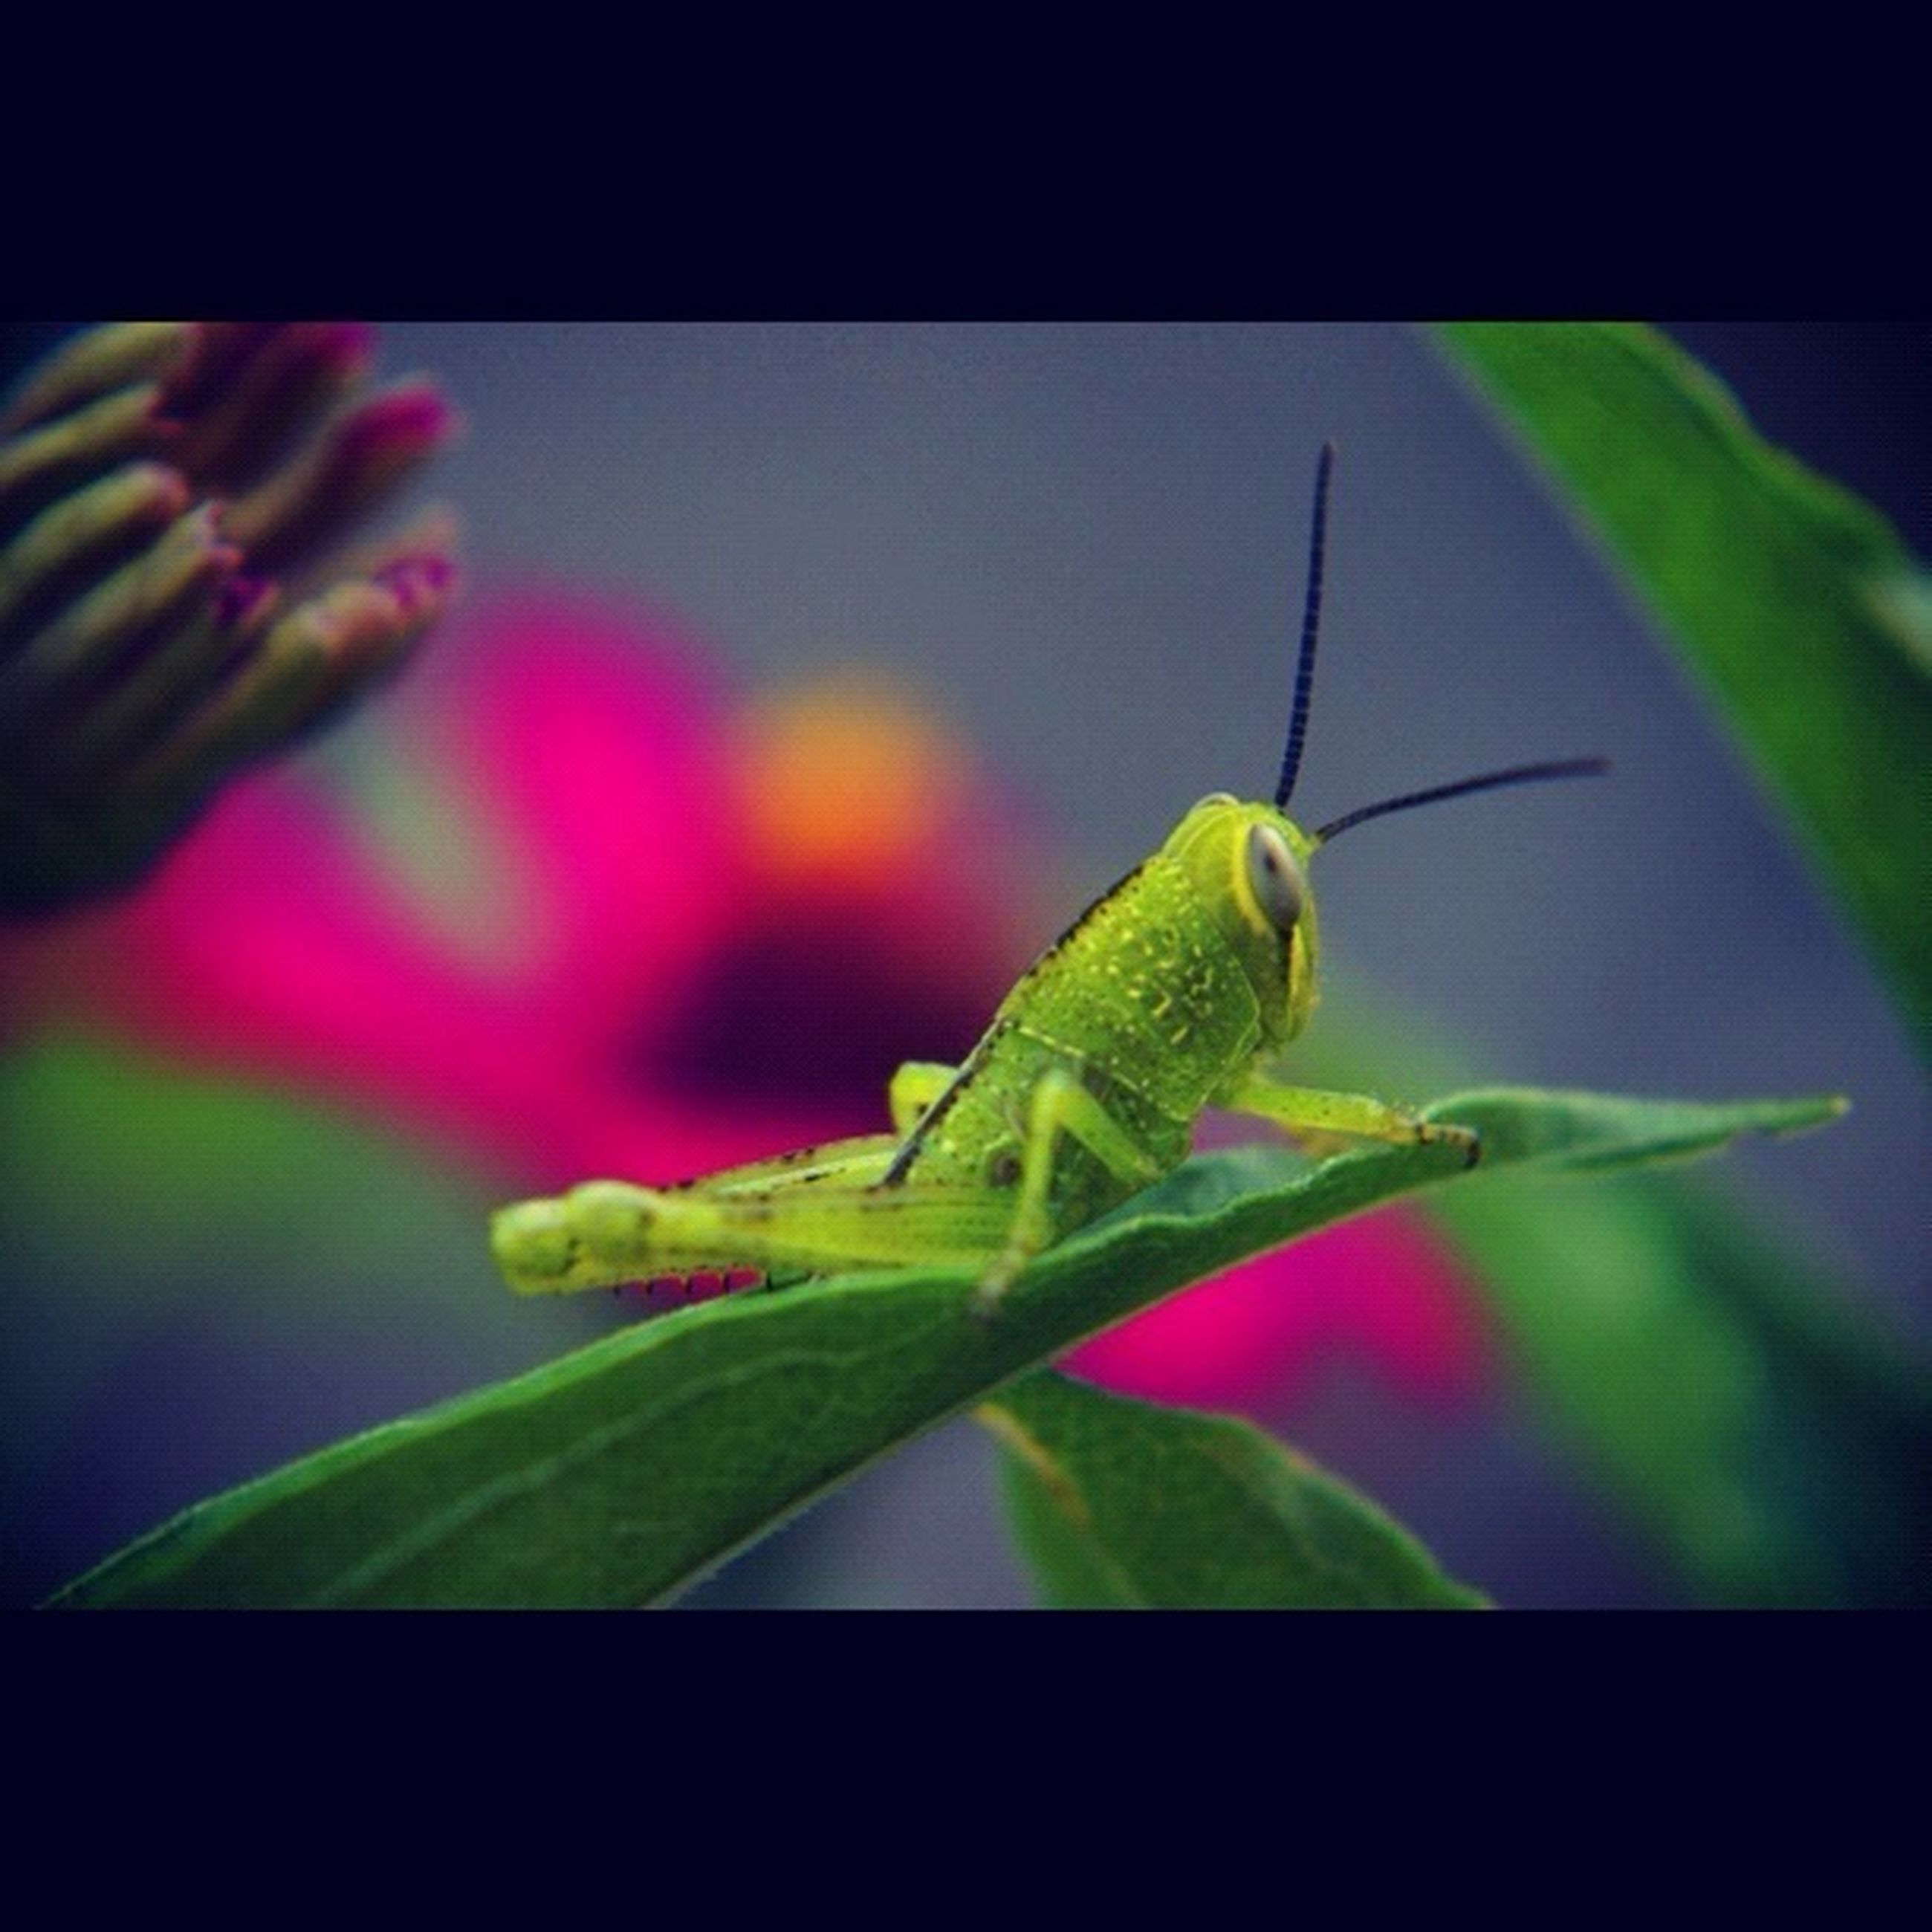 animal themes, one animal, animals in the wild, wildlife, insect, close-up, green color, leaf, focus on foreground, nature, perching, full length, zoology, plant, beauty in nature, selective focus, side view, animal antenna, green, no people